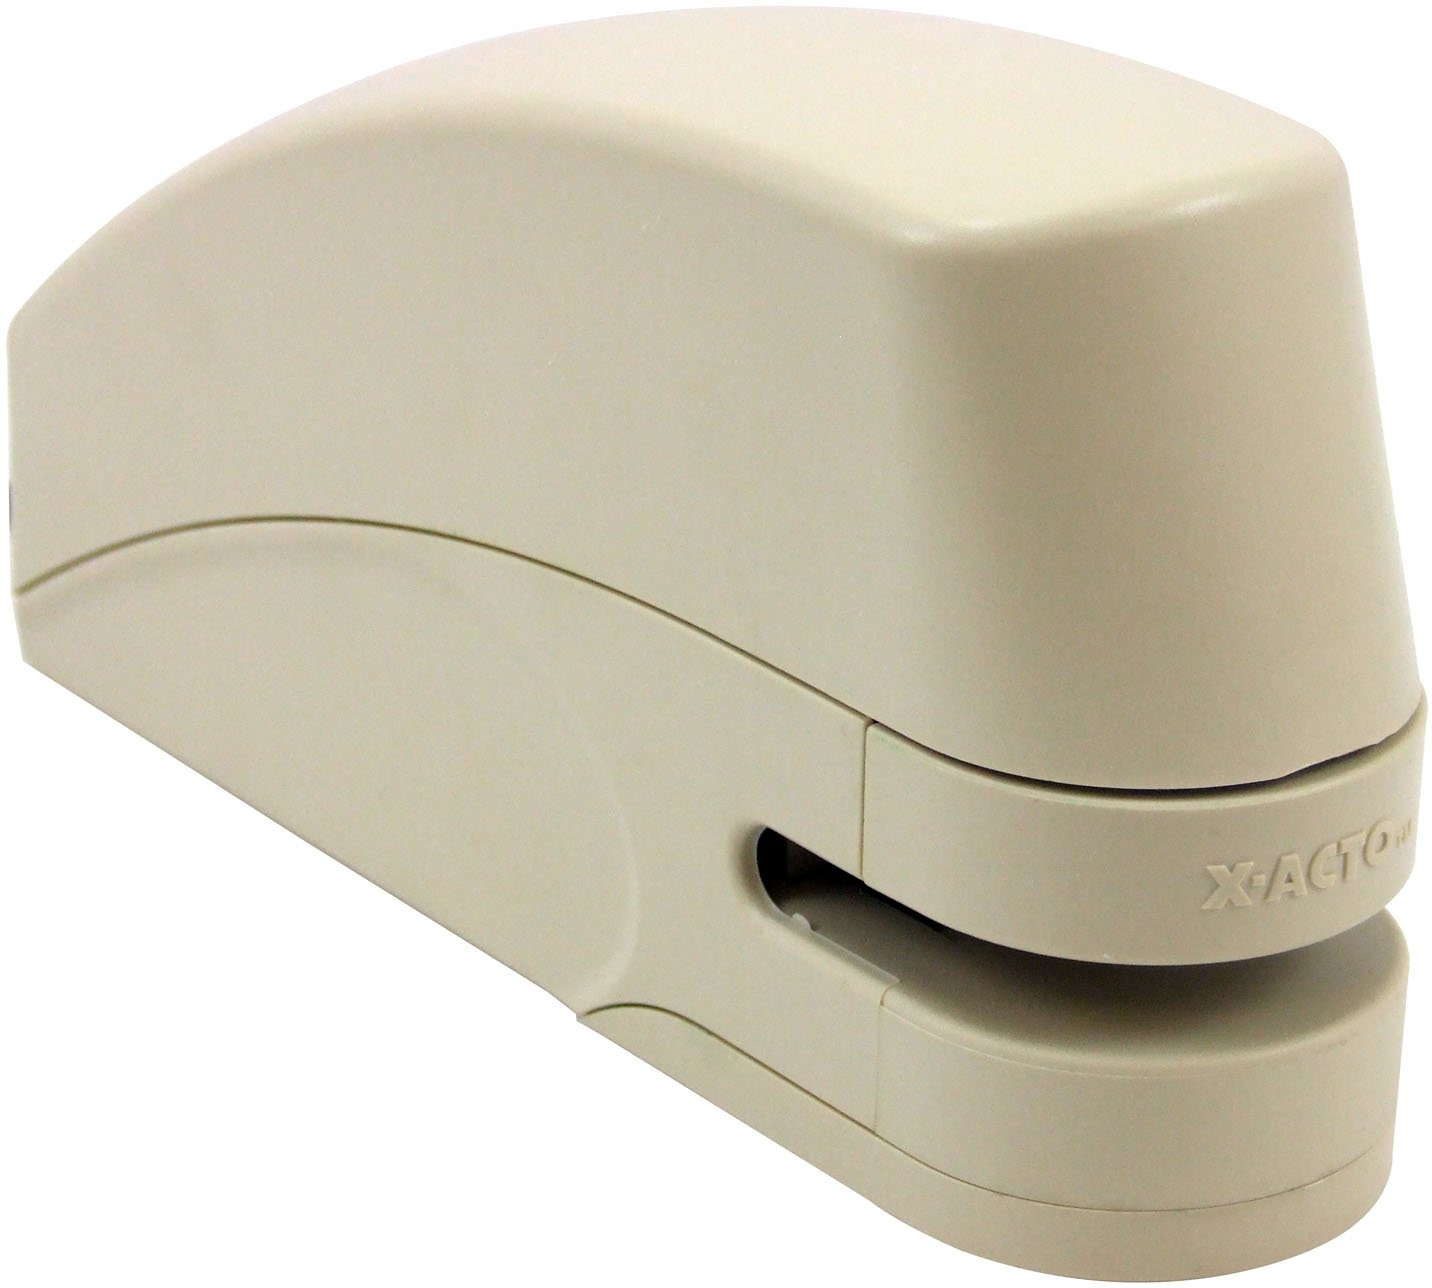 ELMERS Rapid Personal Electric Stapler -Putty (73100)